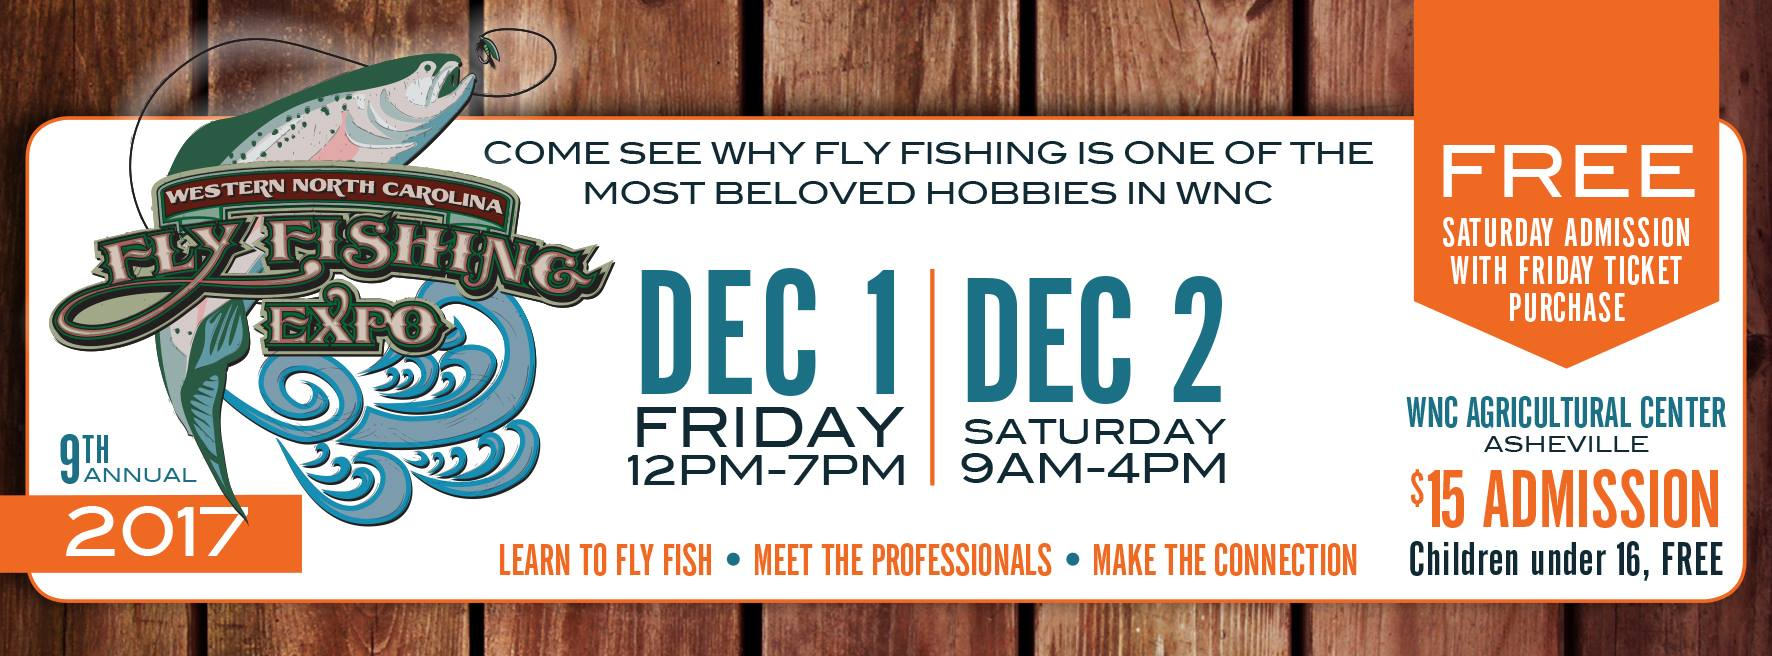 2017 WNC Fly Fishing Expo.jpg